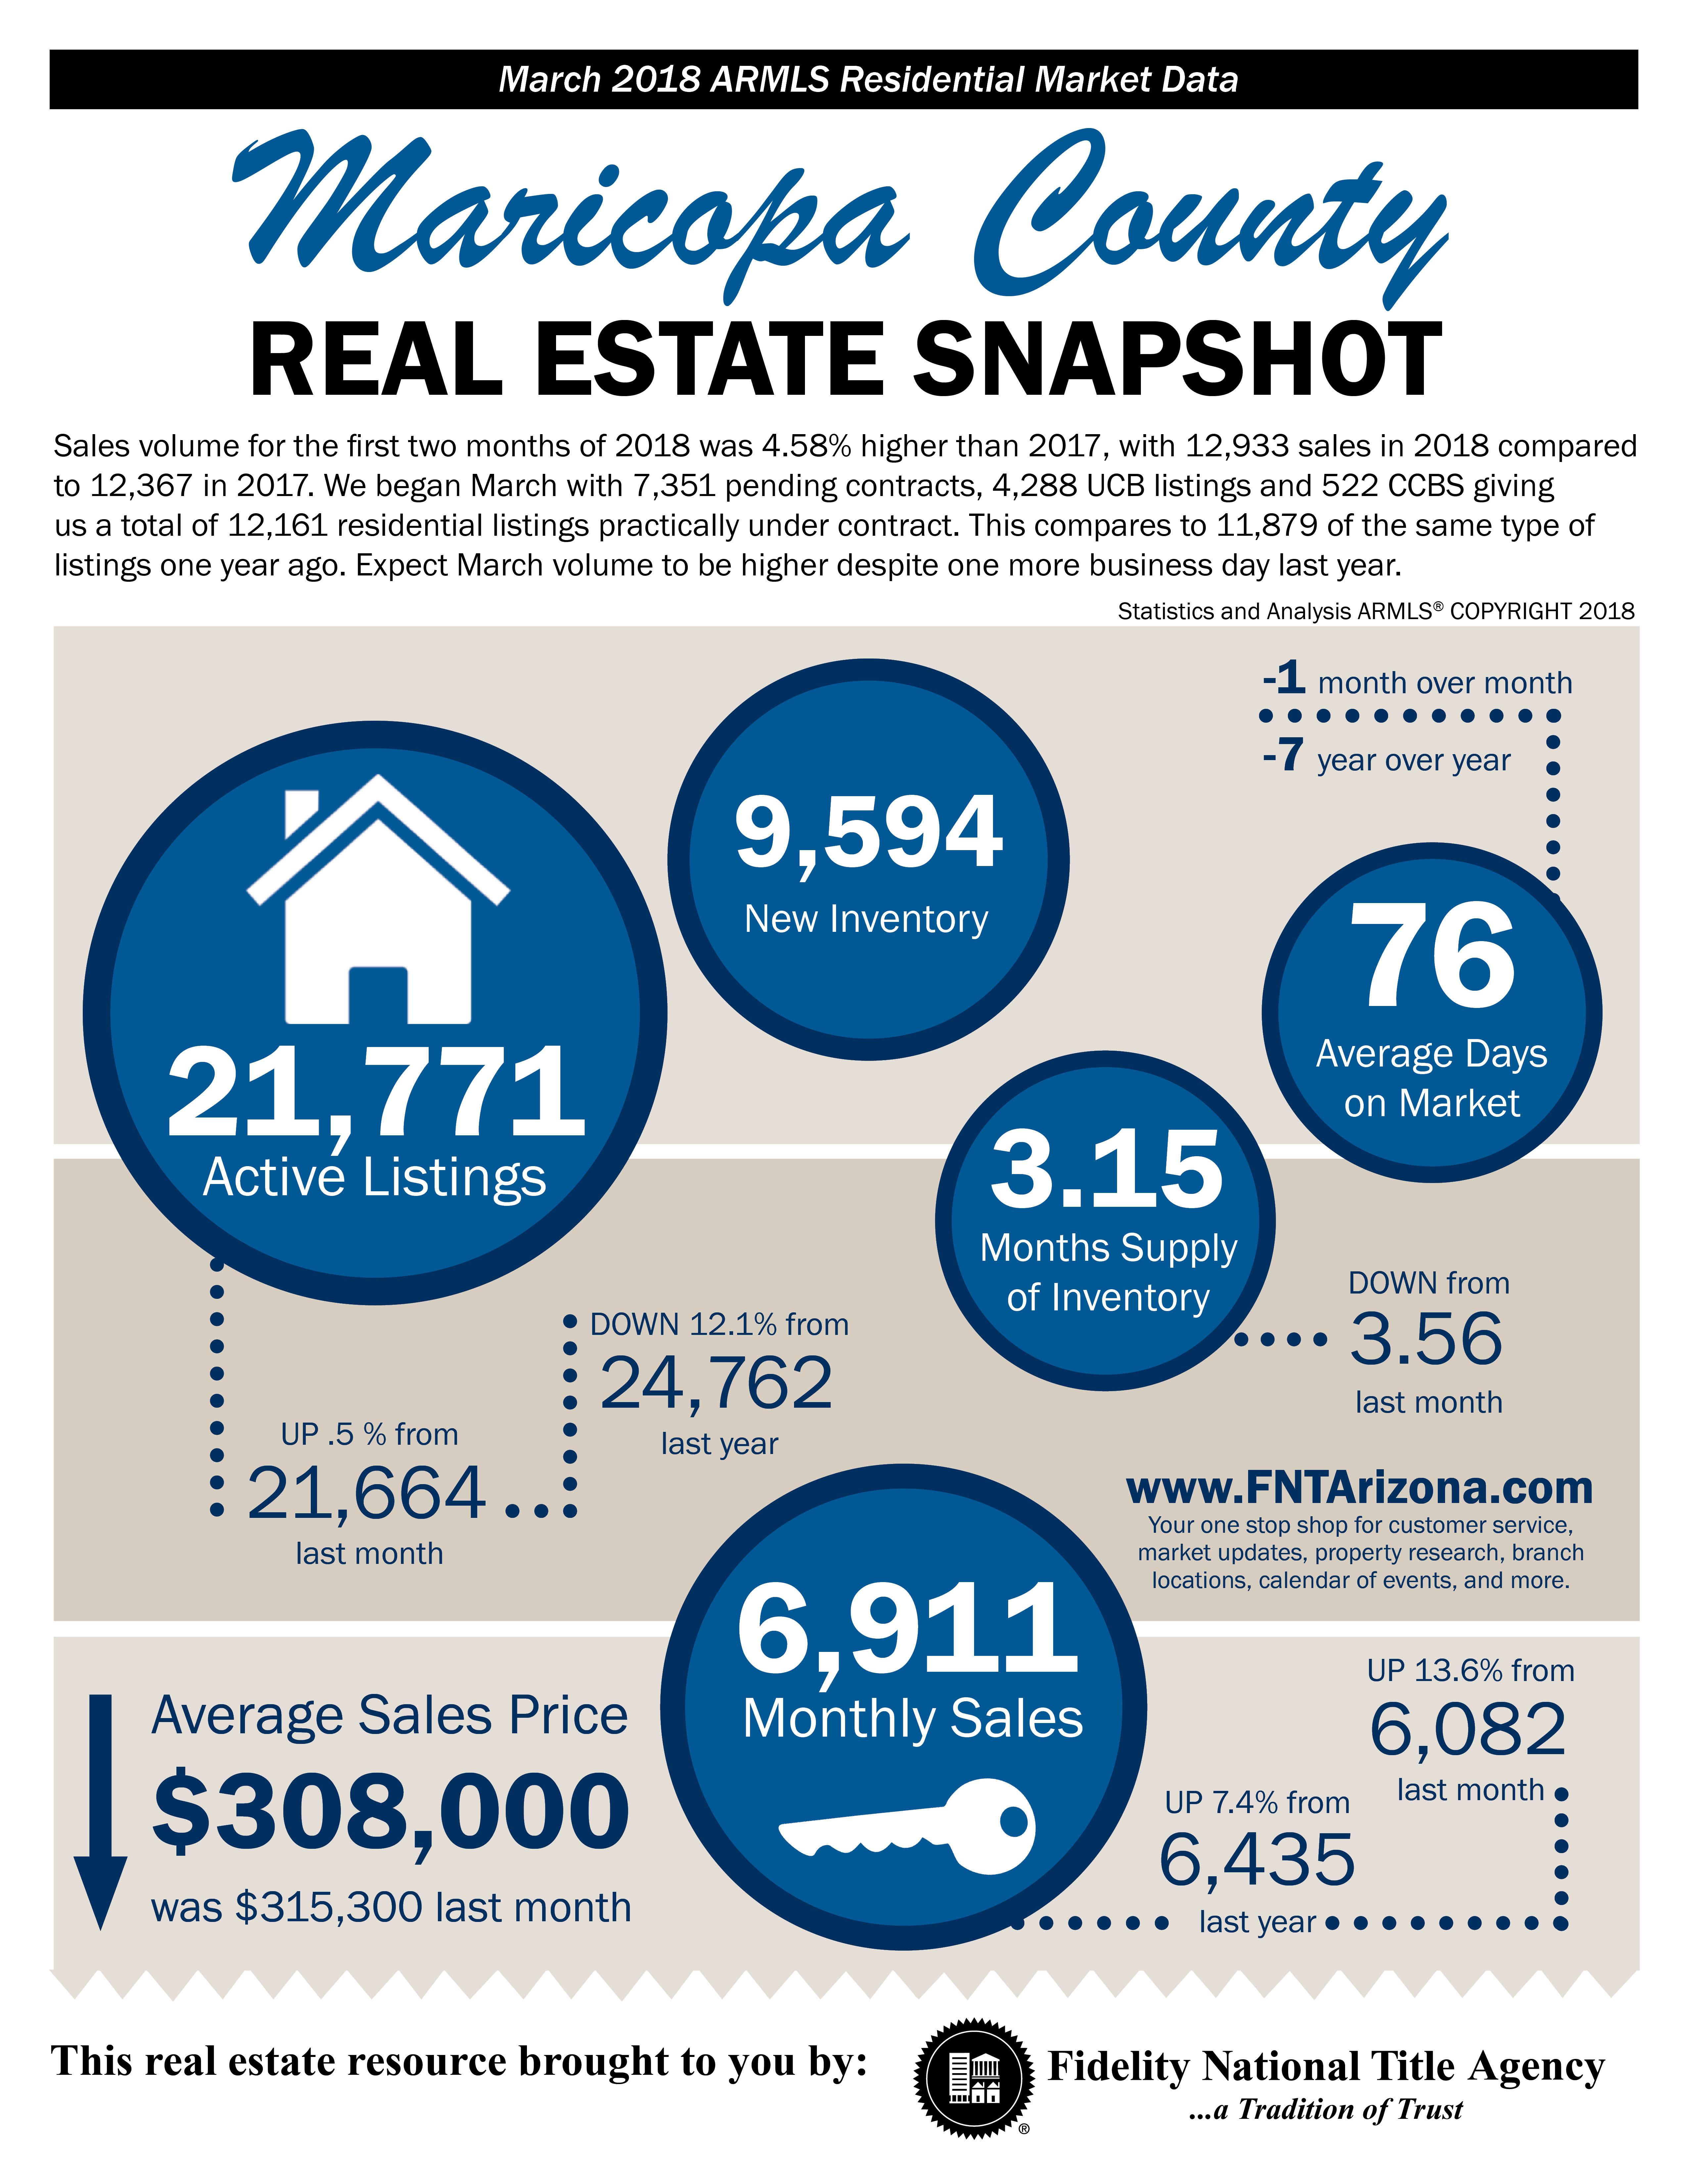 March 2018 Maricopa County Real Estate Snapshot